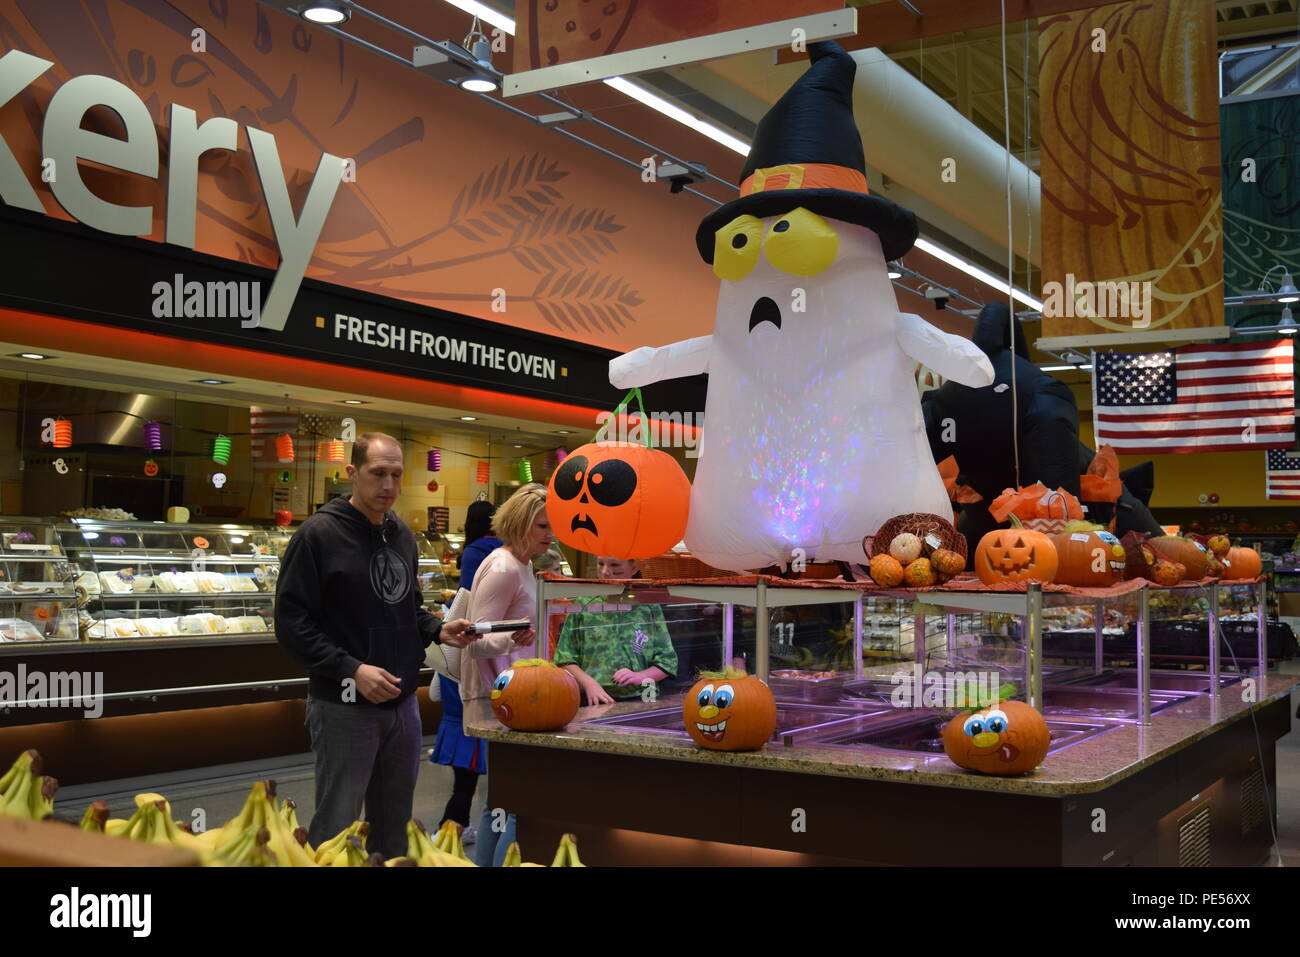 Ramstein Commissary High Resolution Stock Photography And Images Alamy